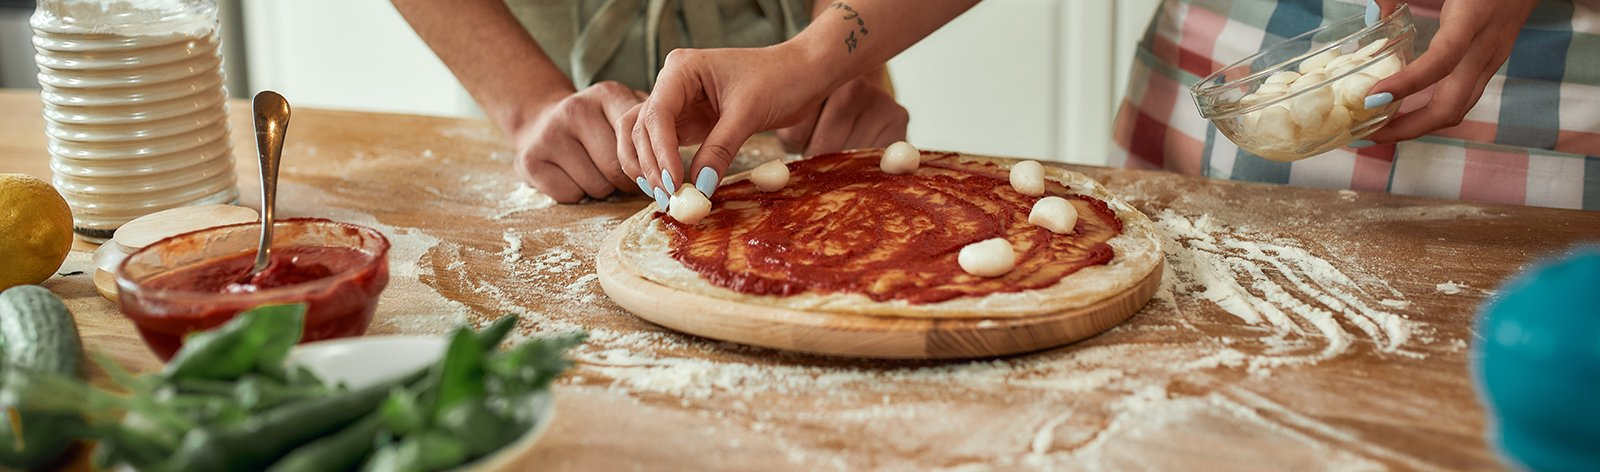 Couple making pizza together at home